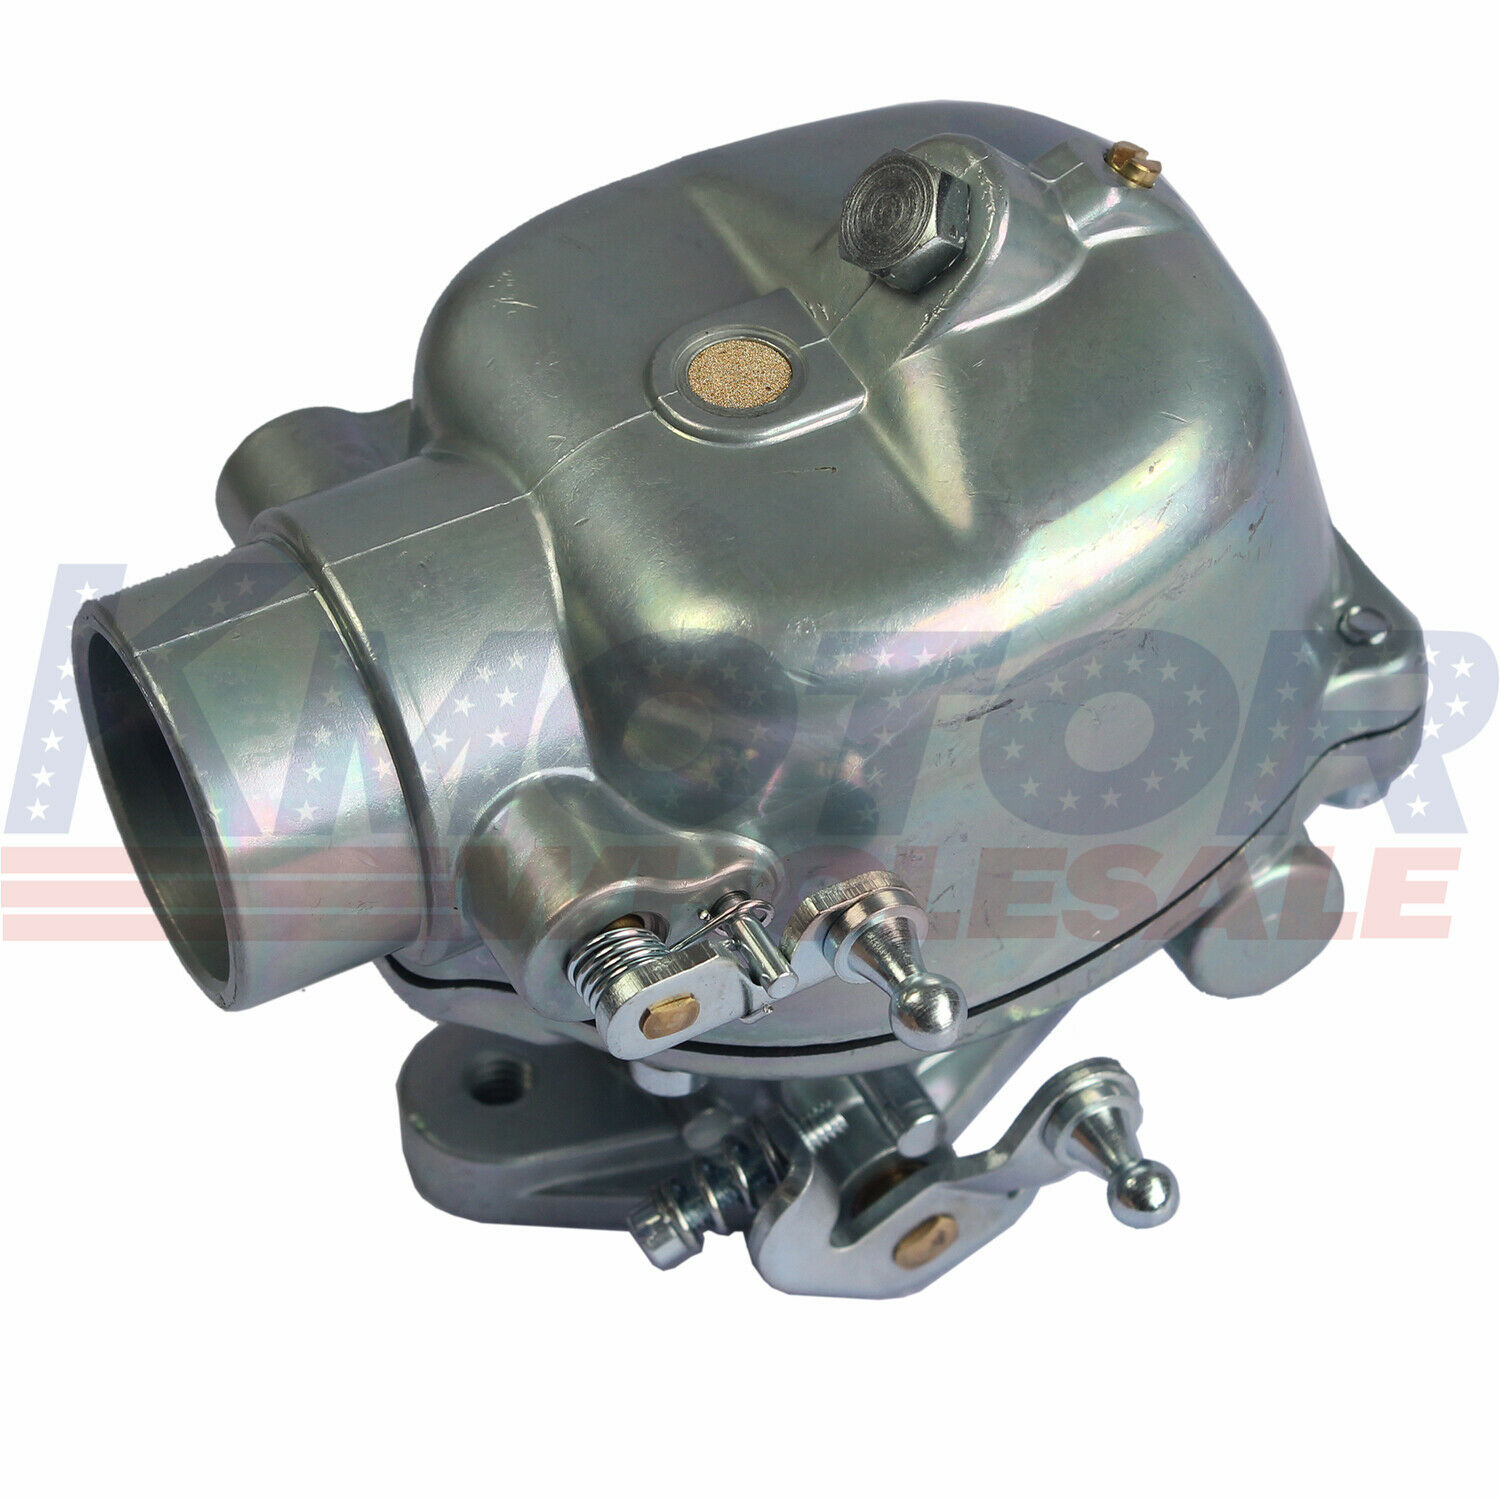 Ruijie 8N9510C Carburetor for Heavy Duty Marvel Schebler Ford Tractor 2N 8N 9N Replace 8N9510C 8N9510C-HD 9N9510A B3NN9510A TSX241A TSX241B TSX241C TSX33 with Gaskets and Bolts